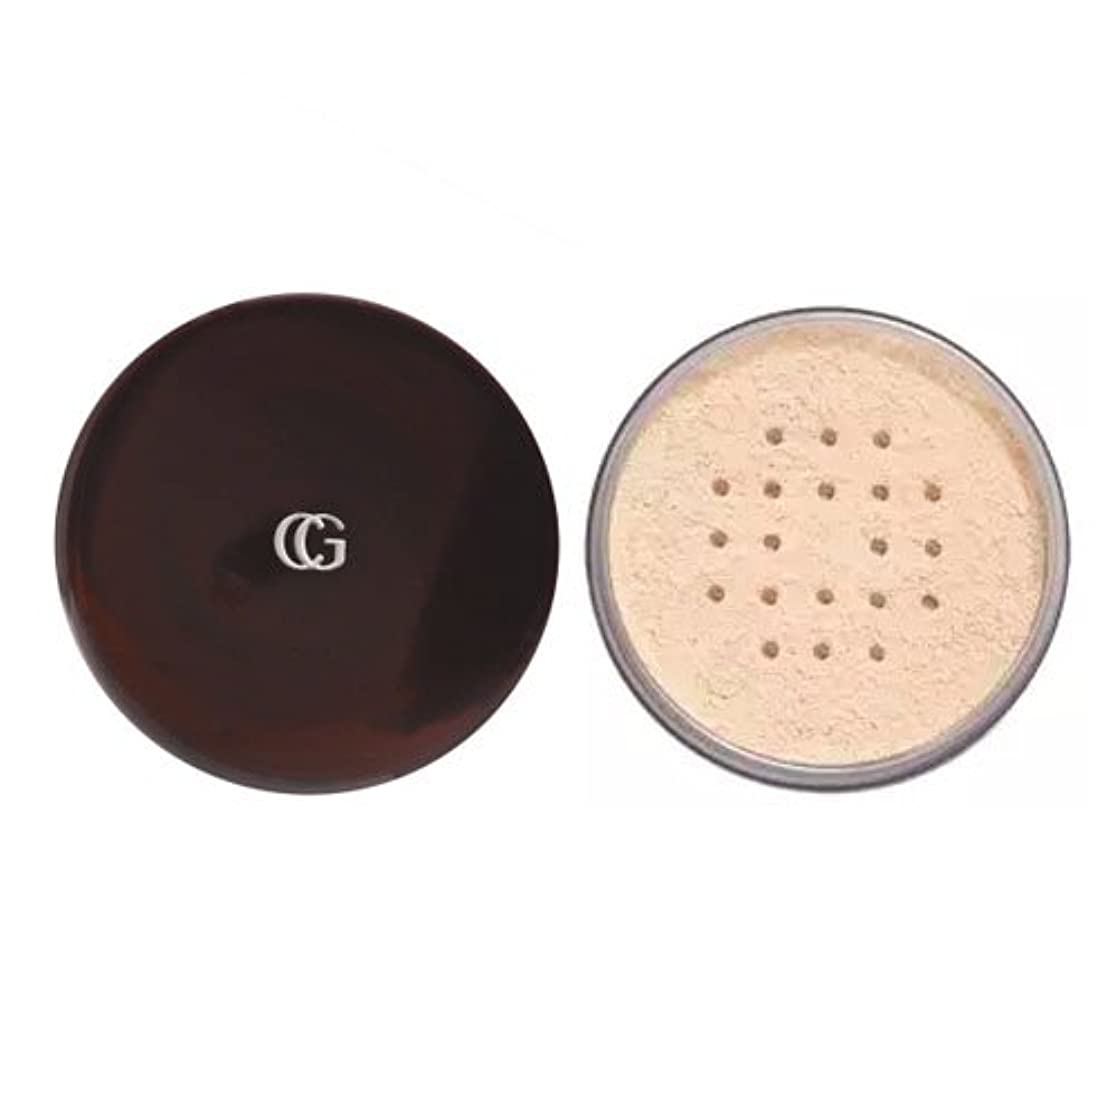 ソーシャル吸うマネージャー(3 Pack) COVERGIRL Professional Loose Powder - Translucent Fair 105 (並行輸入品)